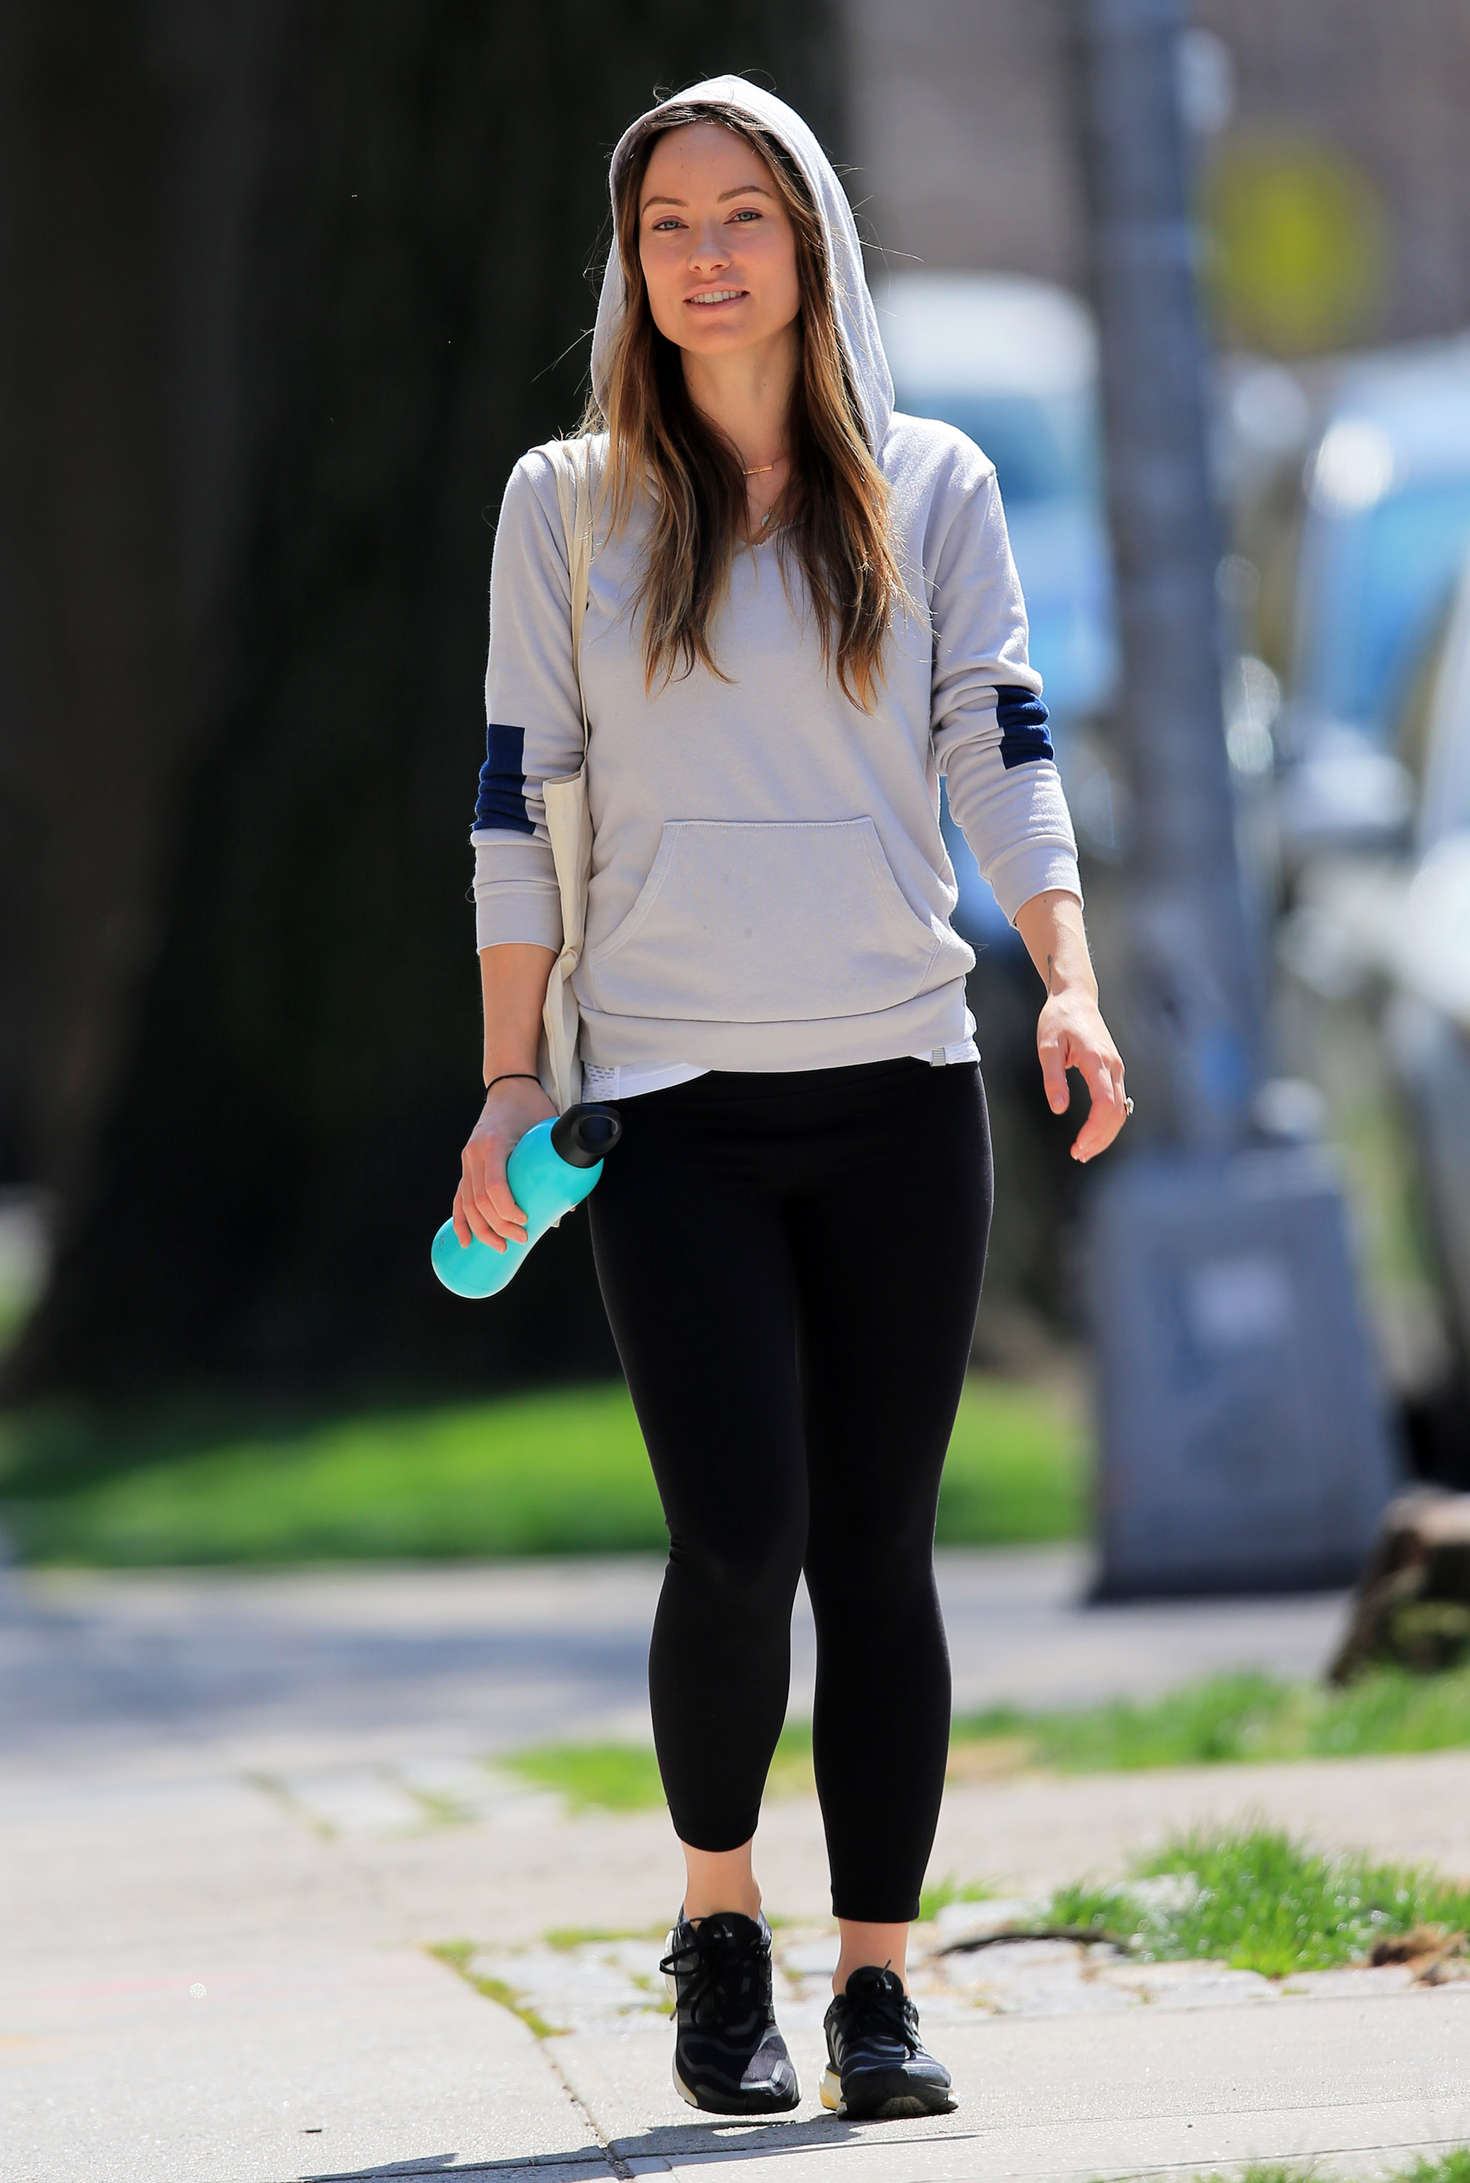 Olivia Wilde in tights jogging in NYC | GotCeleb